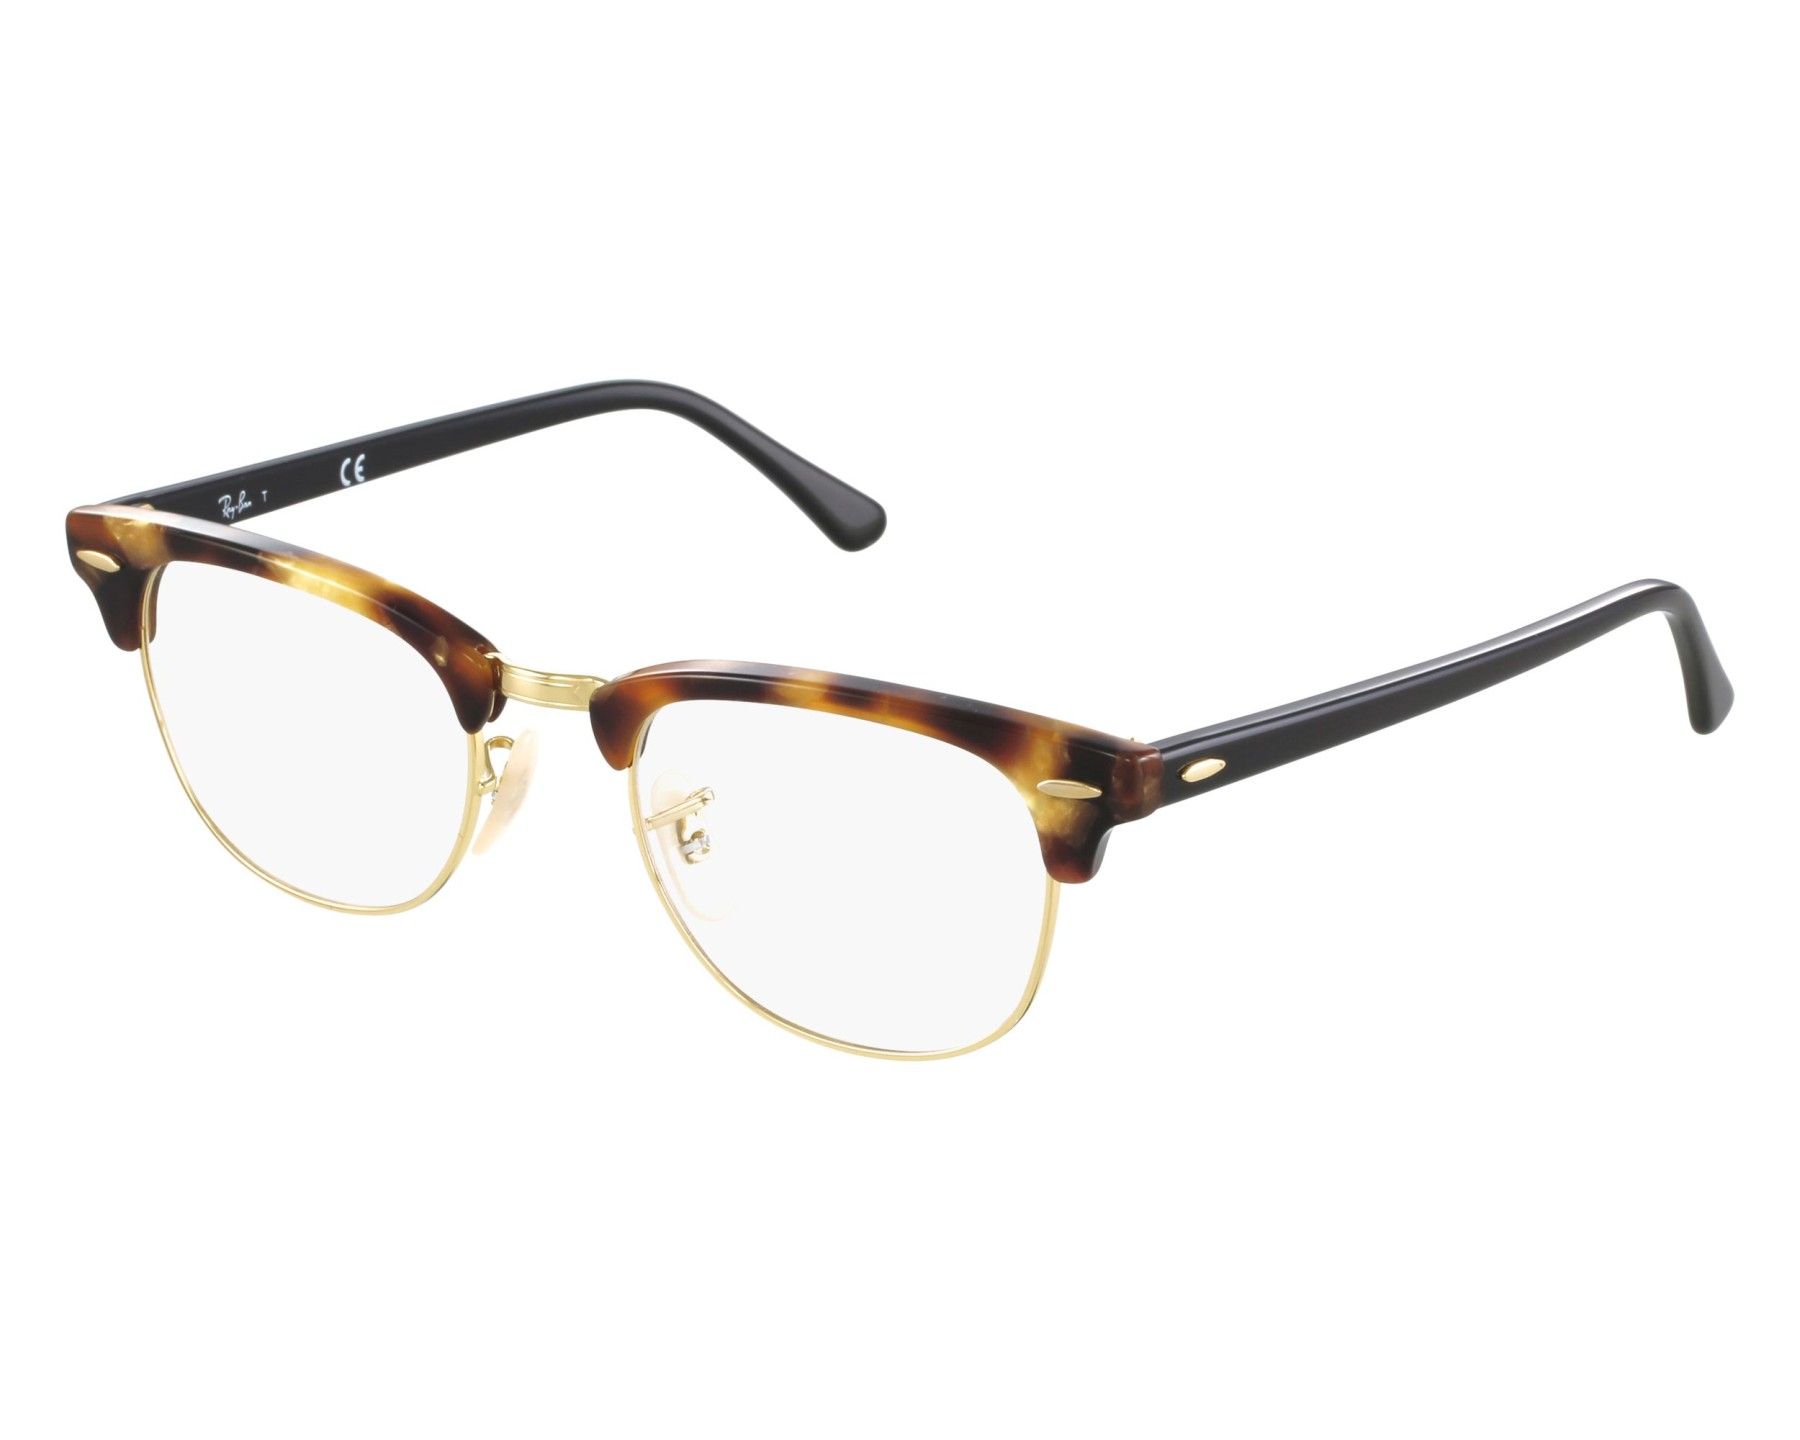 26990164295 eyeglasses Ray-Ban RX-5154 5494 49-21 Havana Gold front view